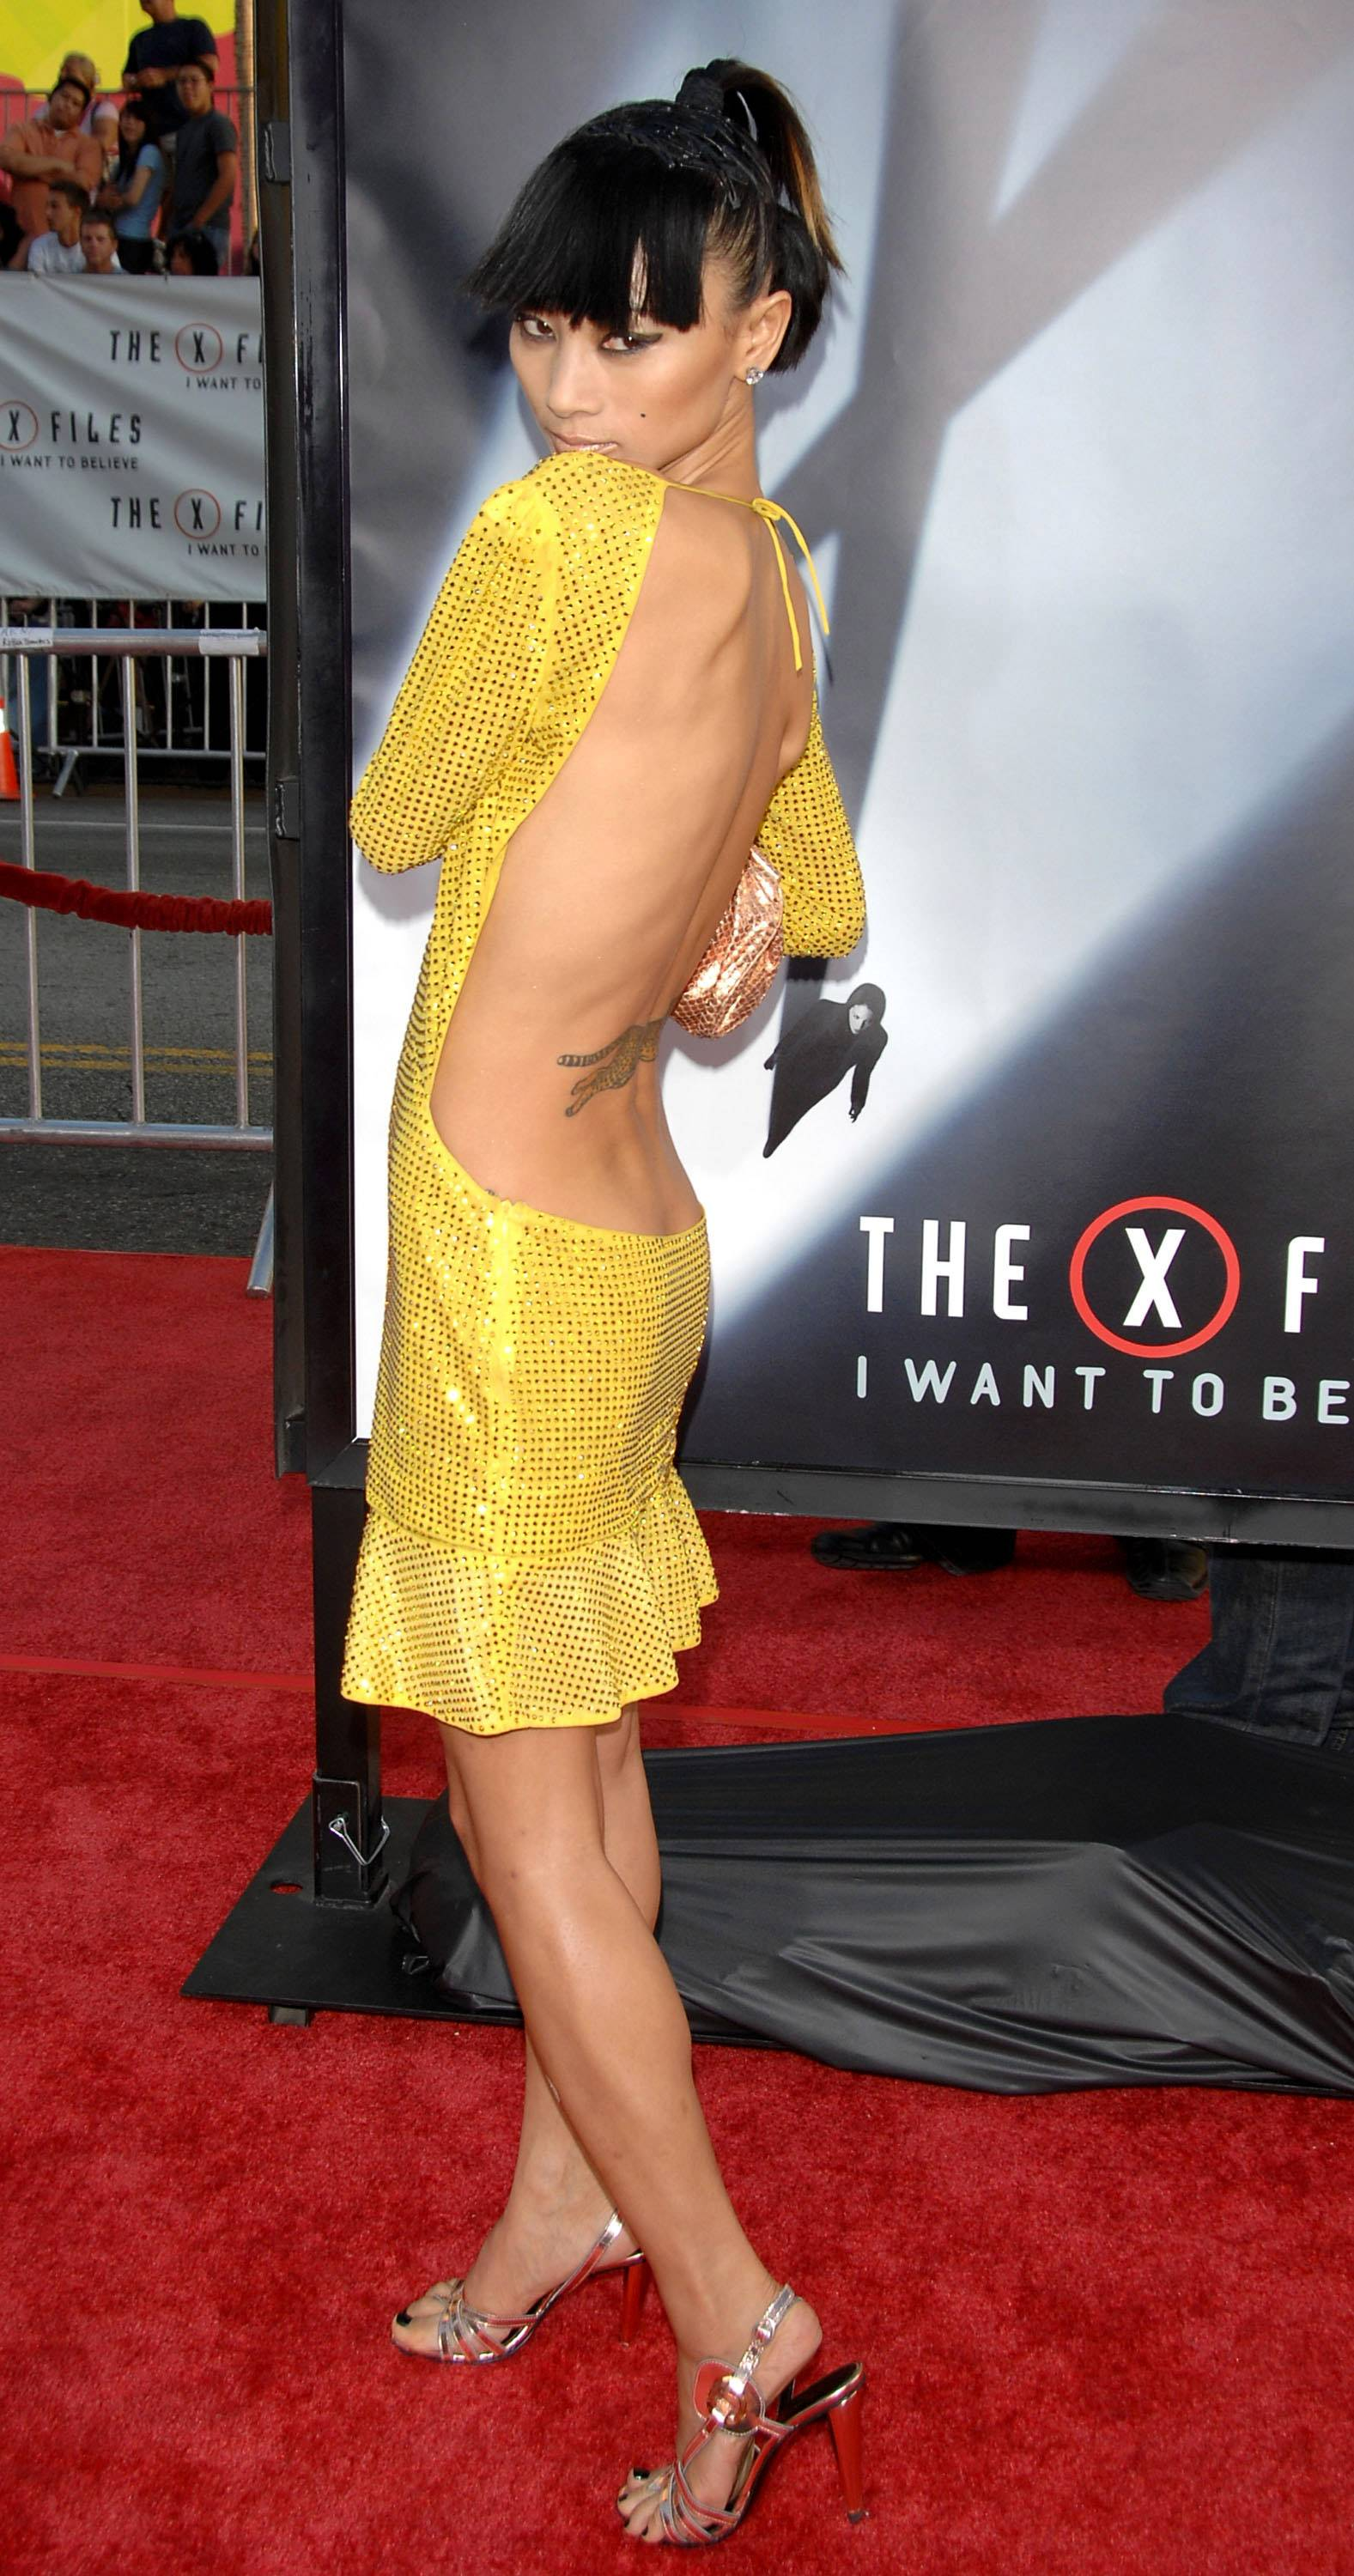 80187_Bai_Ling-The_X_Files_I_Want_To_Believe_World_Premiere_in_Hollywood-xnews2-s007_122_339lo.jpg